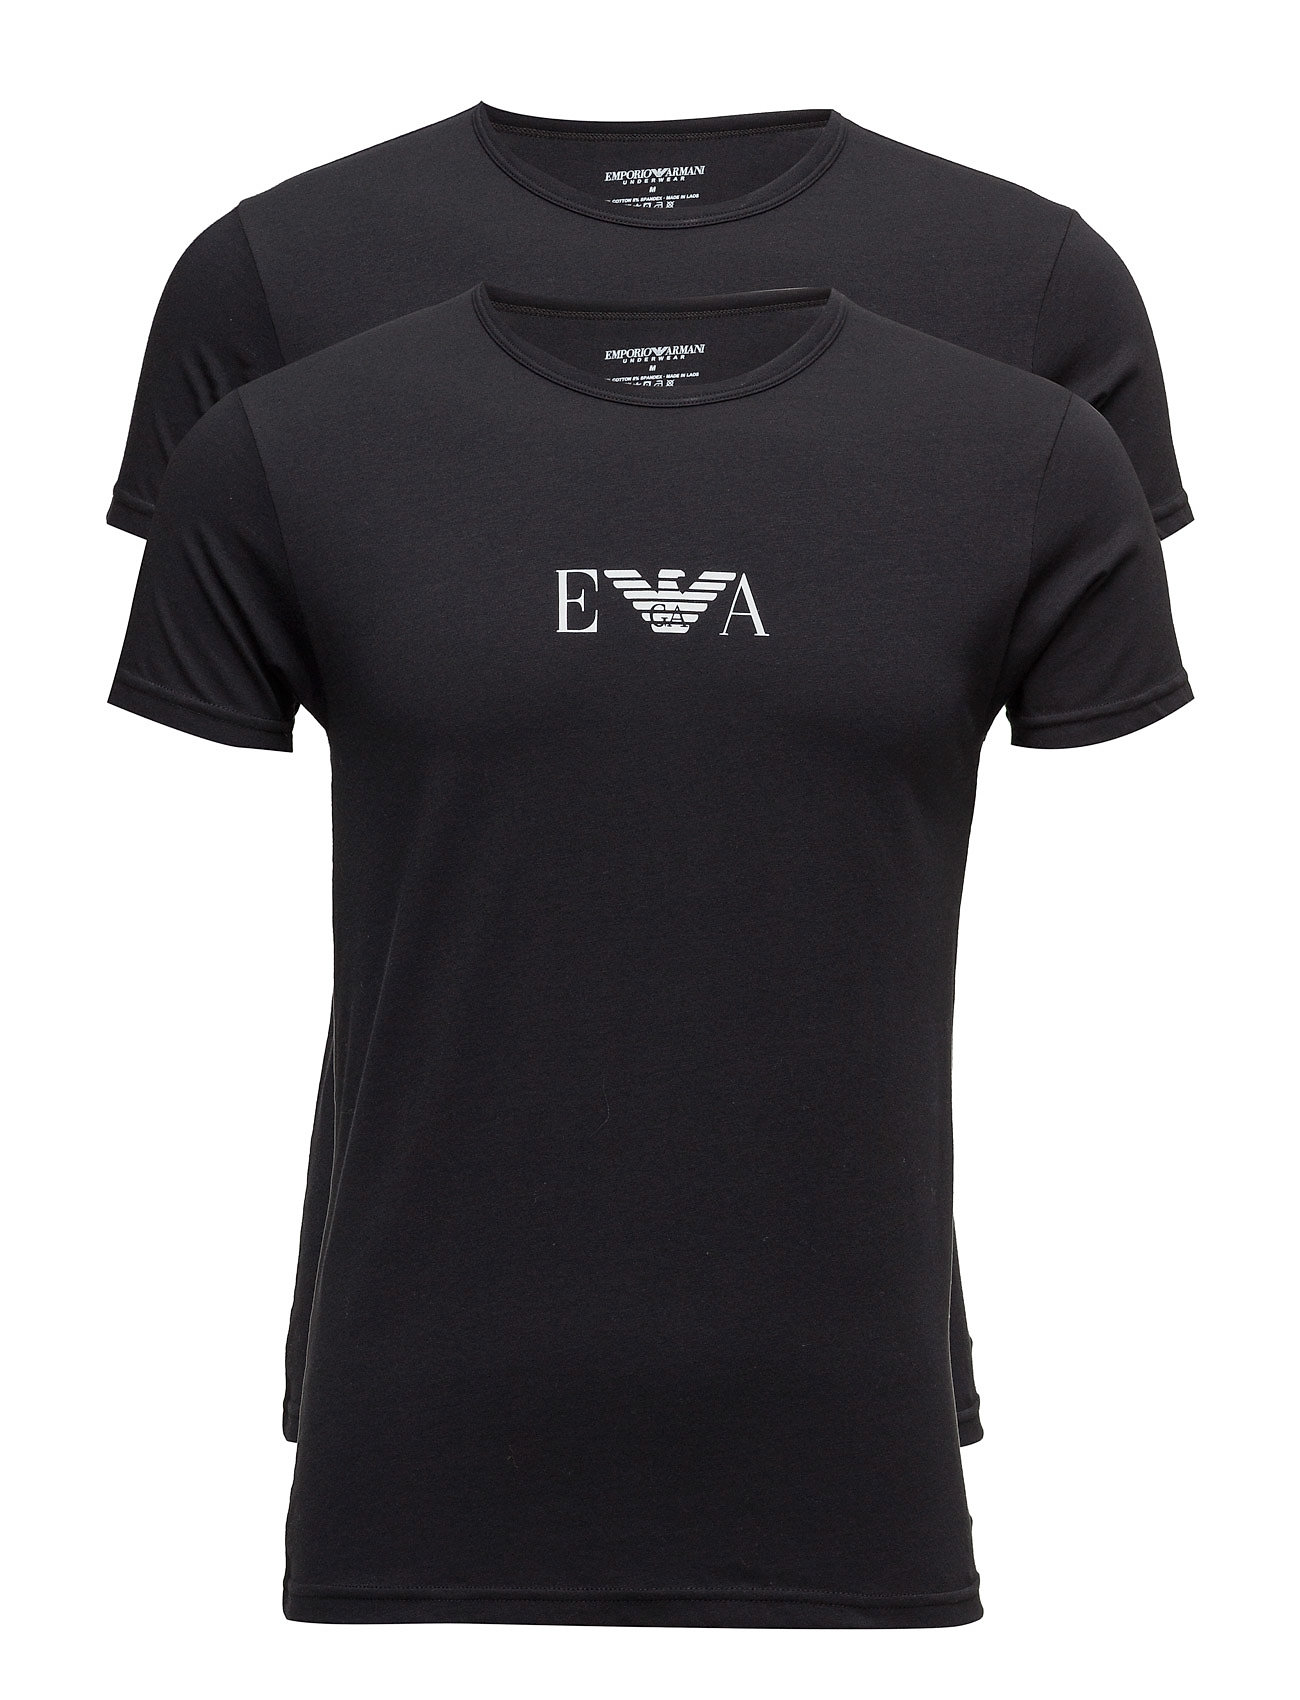 emporio armani – Mens knit 2pack t-sh fra boozt.com dk